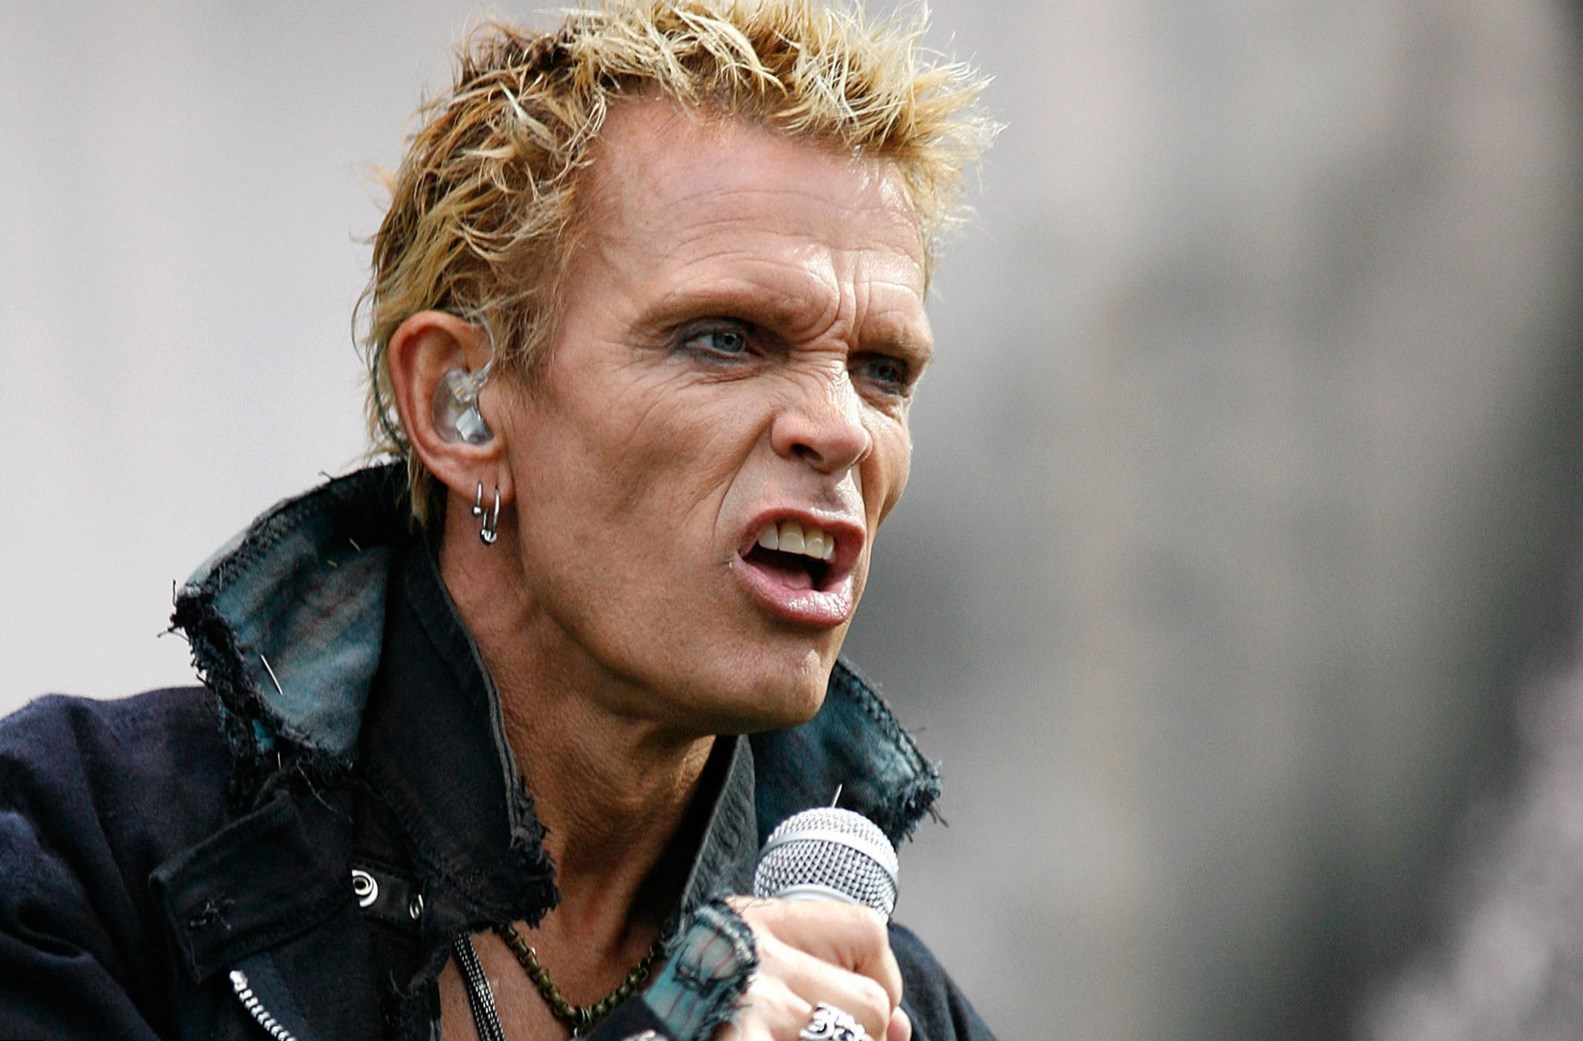 billy idol height weight age and body measurements. Black Bedroom Furniture Sets. Home Design Ideas